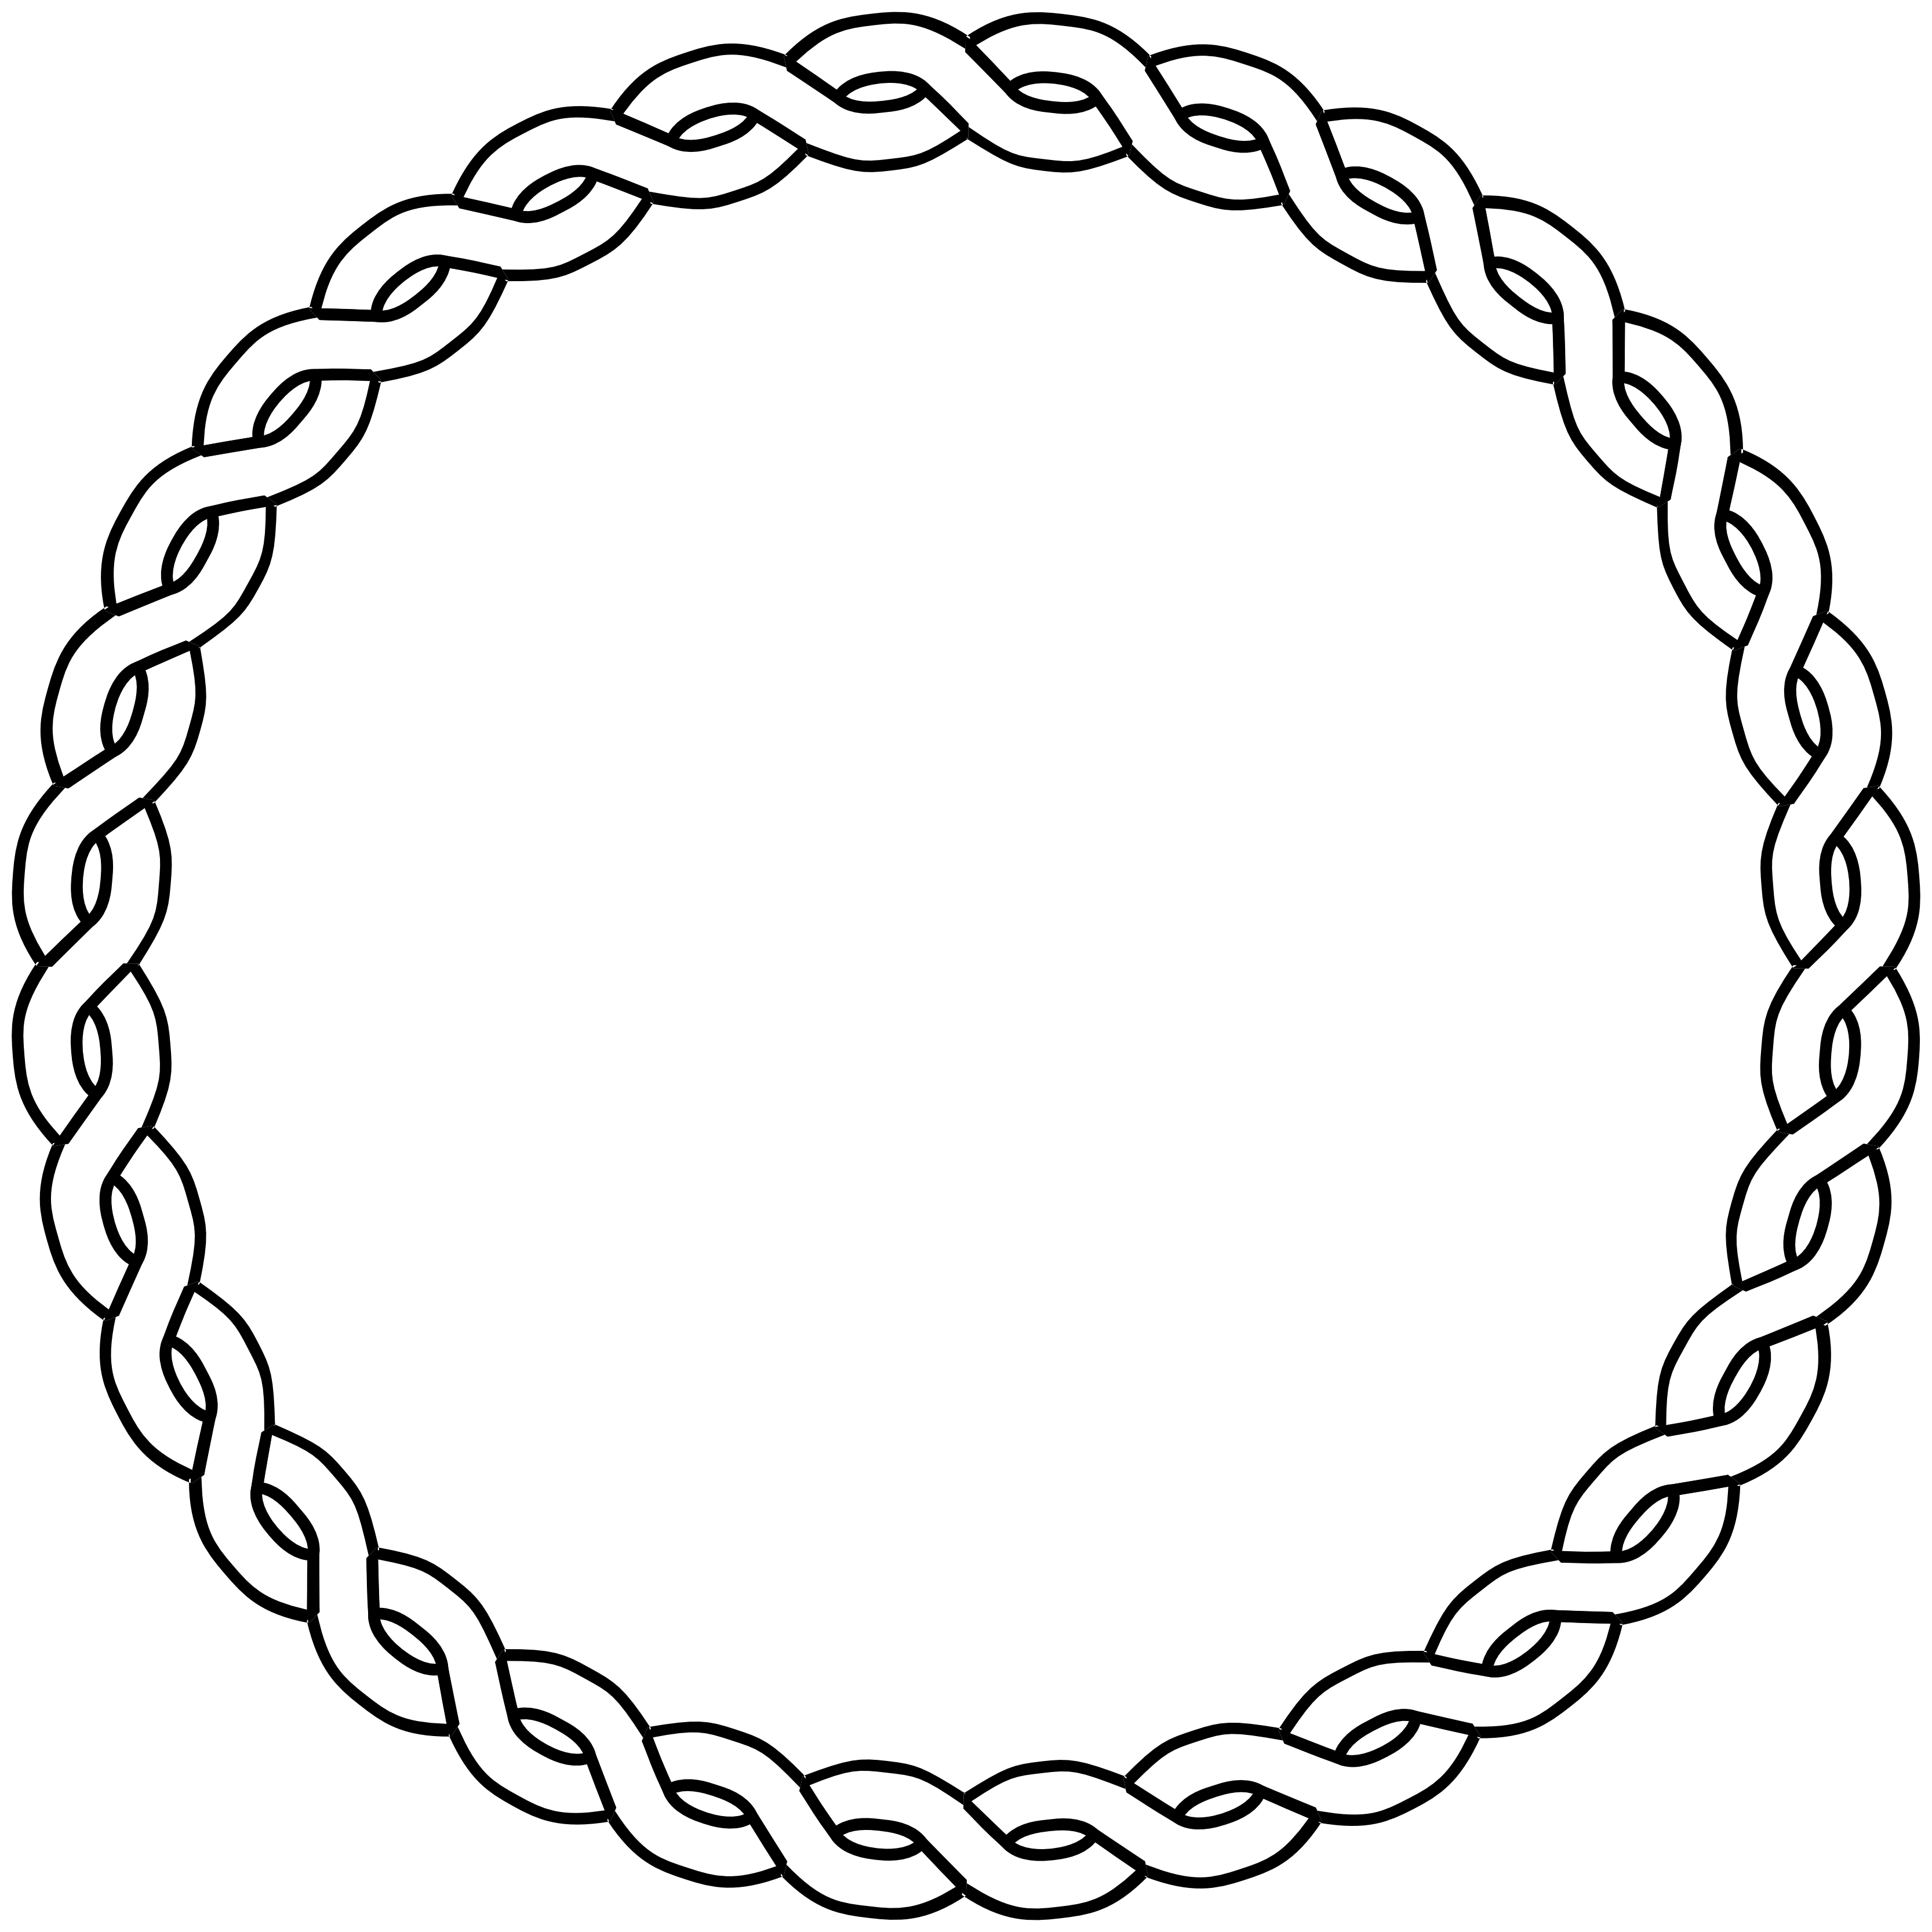 Black and white frame png. Coin border transparent images